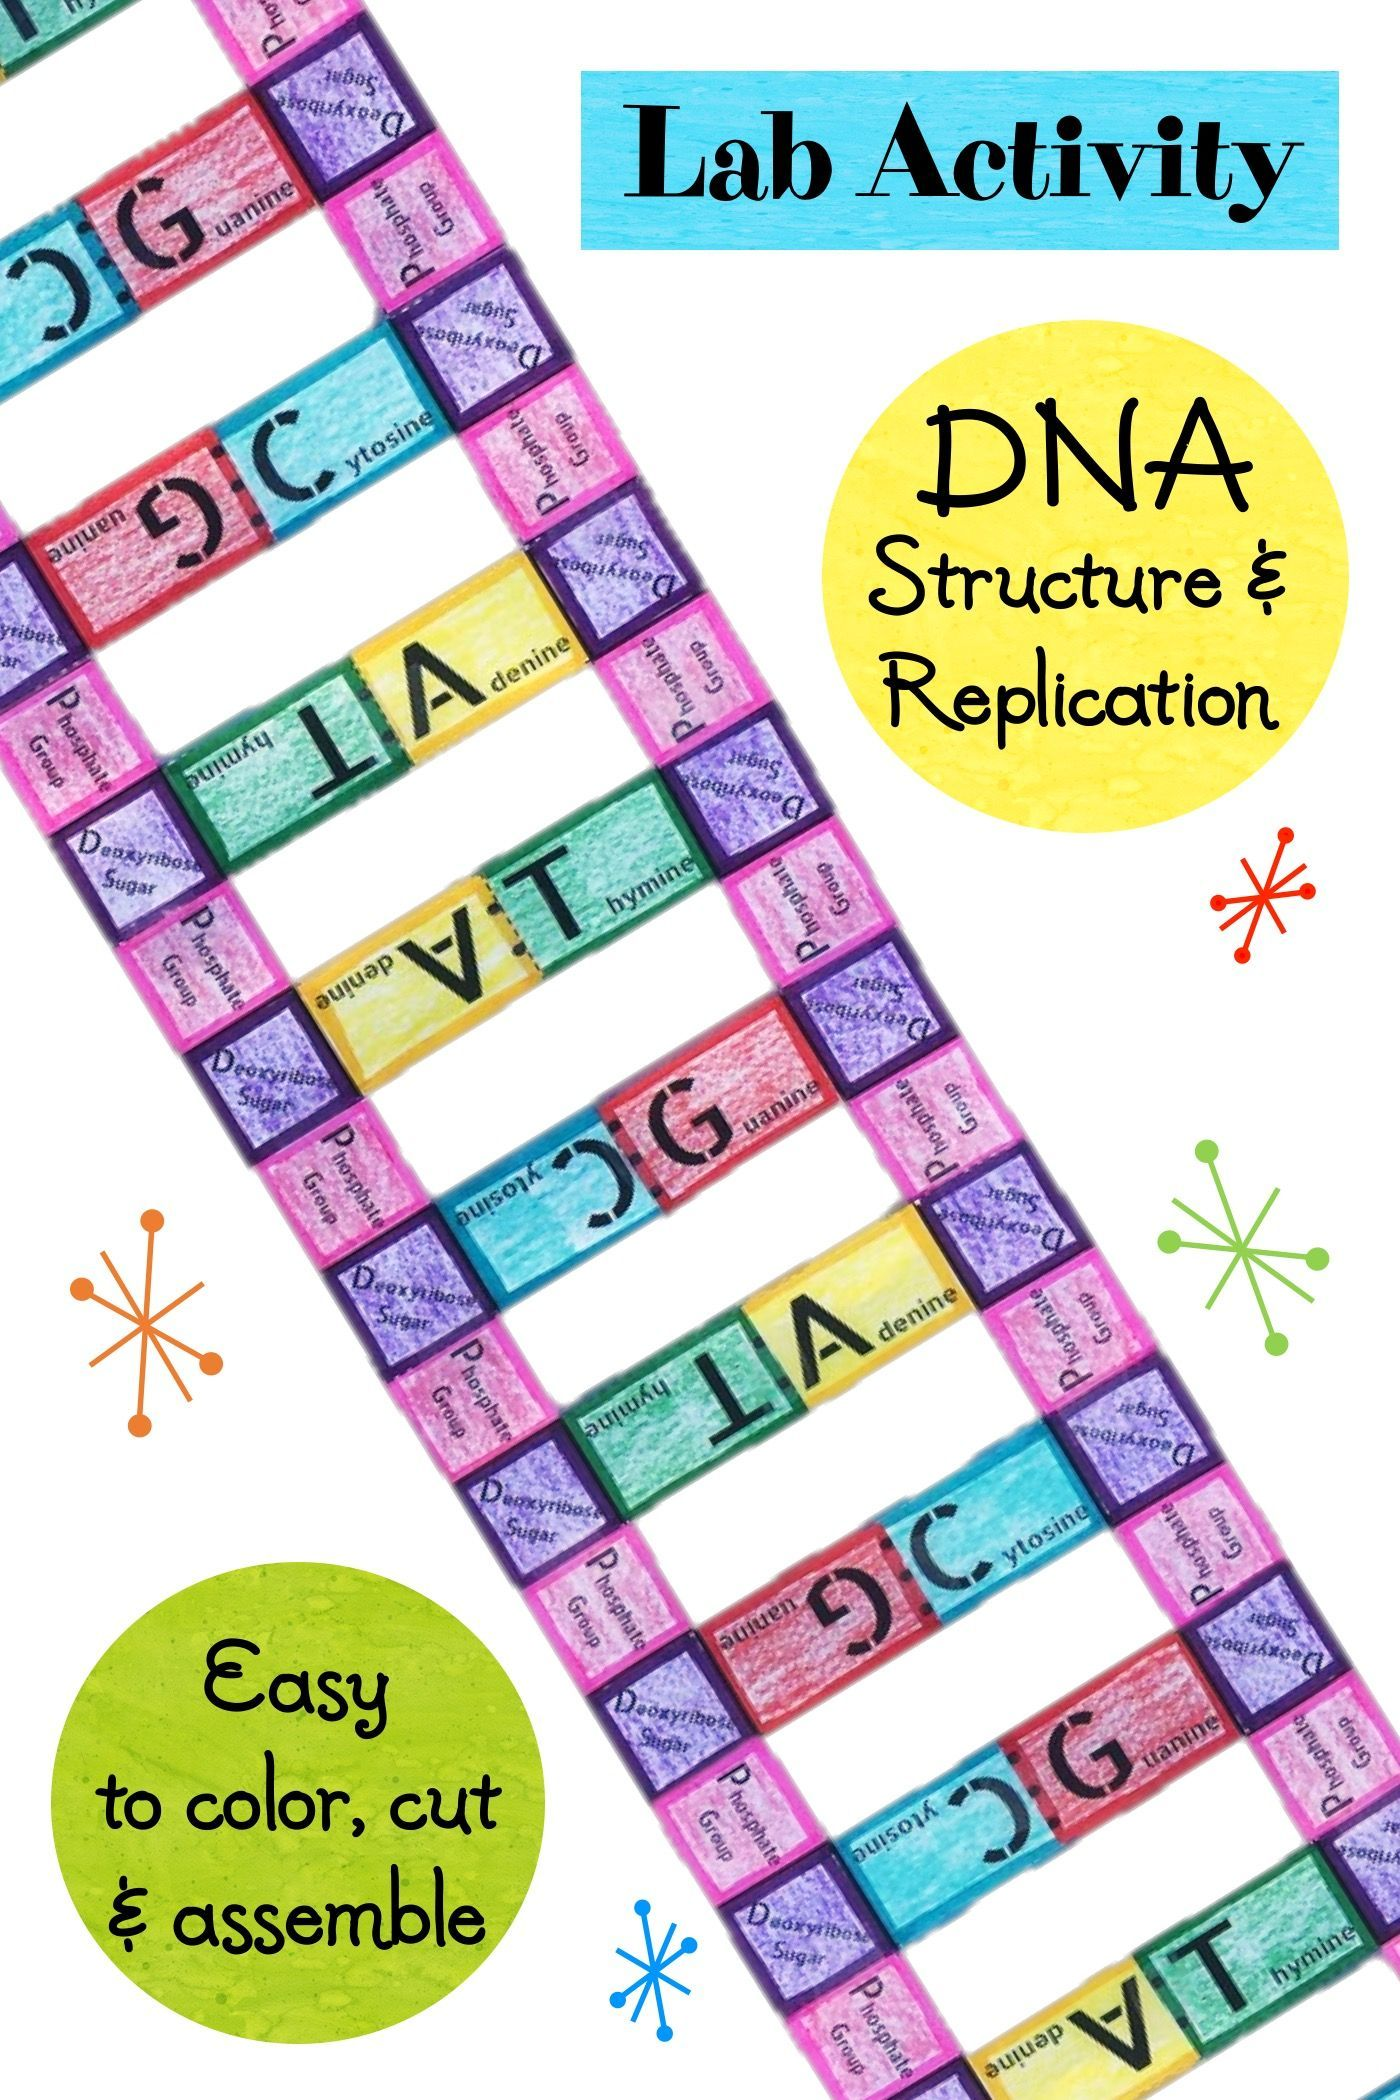 Dna Structure And Replication Lab Activity Worksheet Lab Activities Dna Activities Free Science Worksheets [ 2100 x 1400 Pixel ]